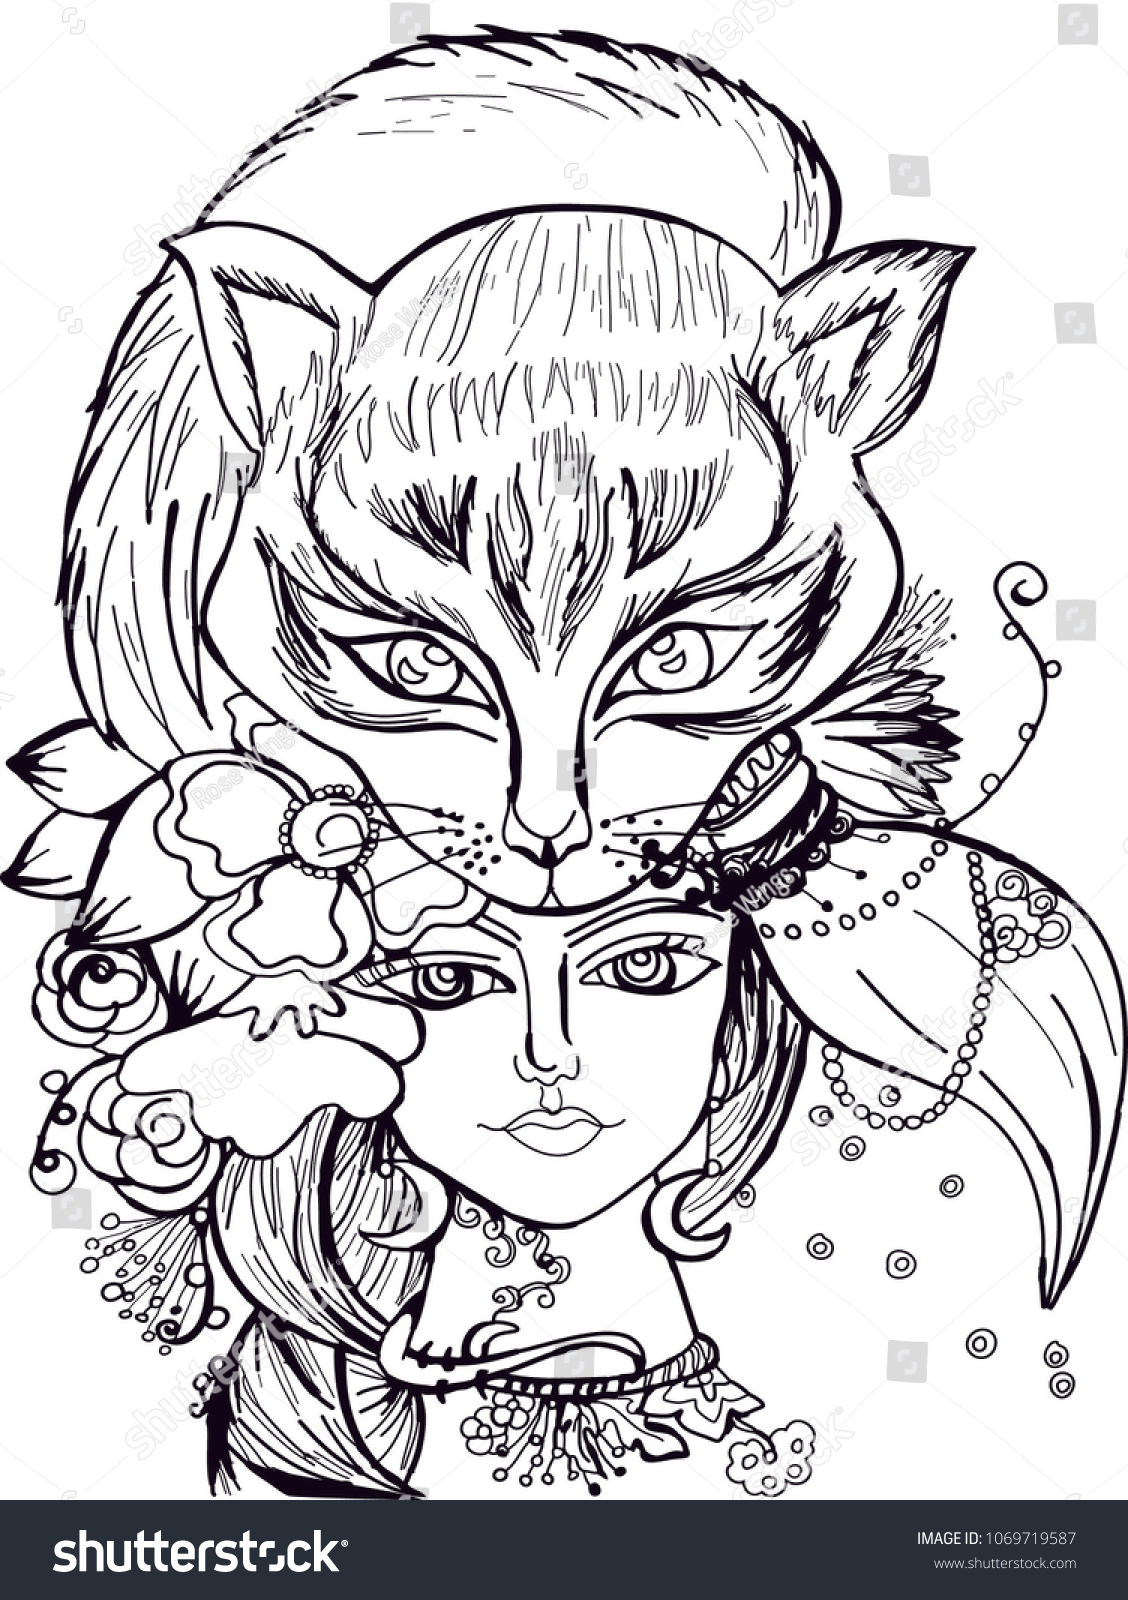 - Girl Animal Flowers Illustration Coloring Pages Stock Vector